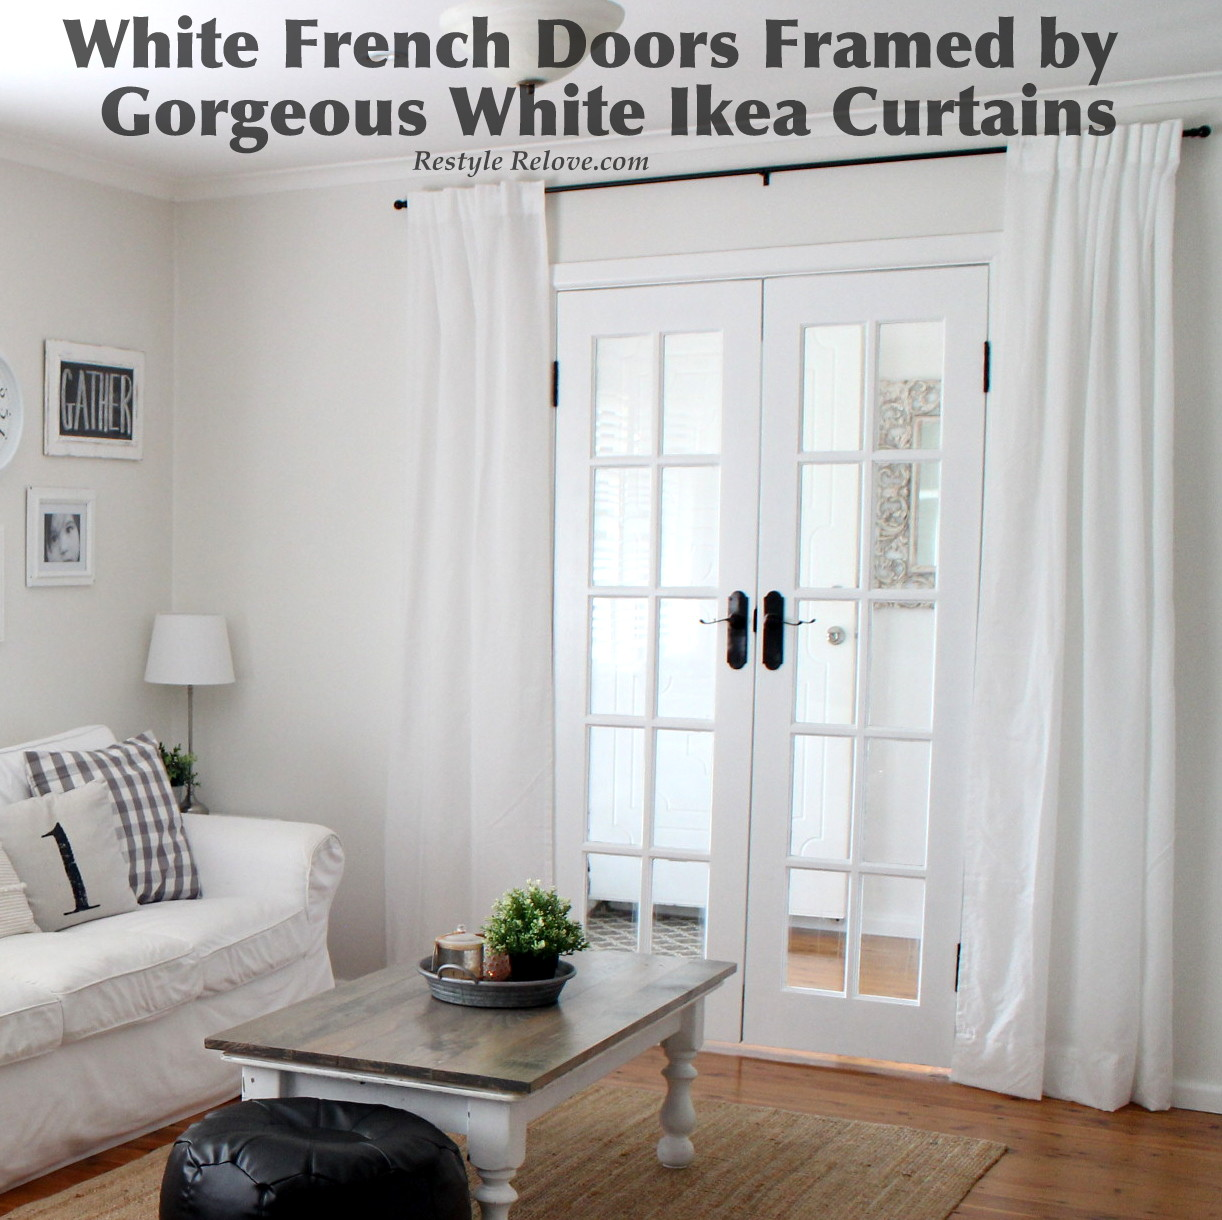 White french doors framed by gorgeous white ikea curtains for White french doors